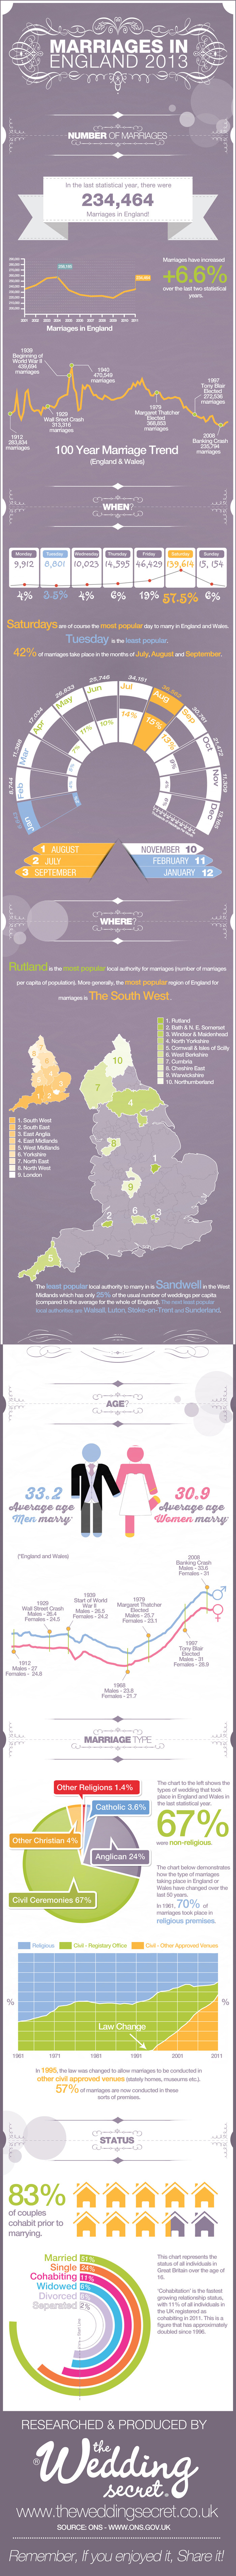 Weddings in England 2013 Infographic - The Wedding Secret